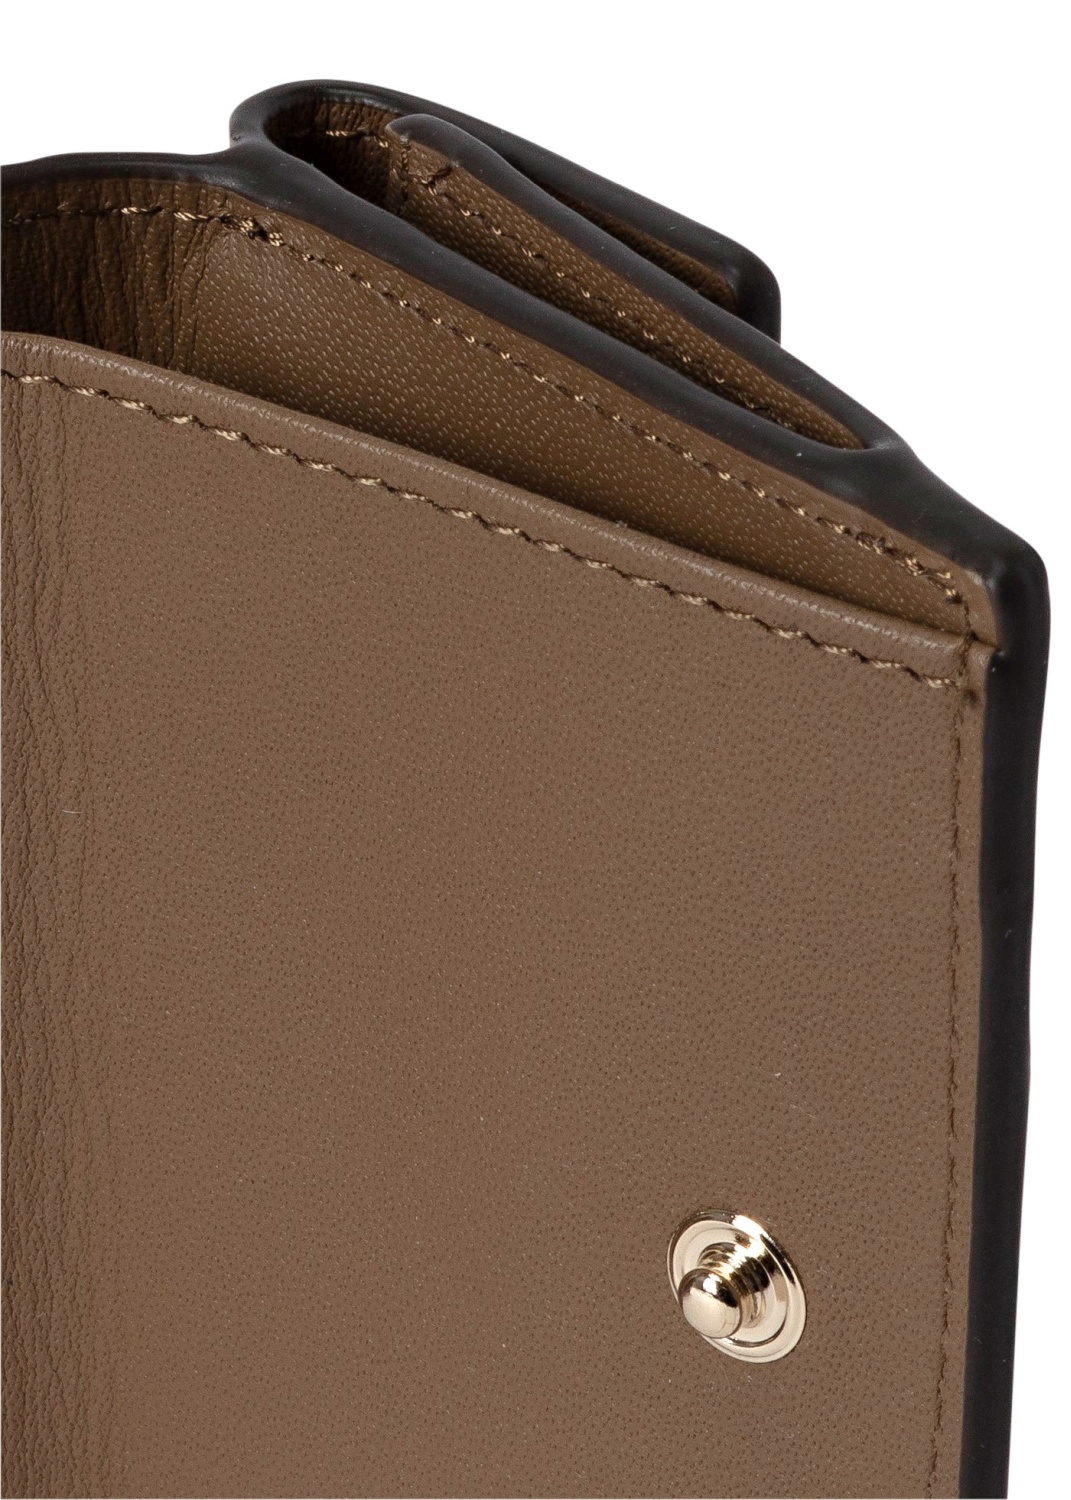 FURLA BABYLON S COMPACT WALLET TRIFOLD image number 3